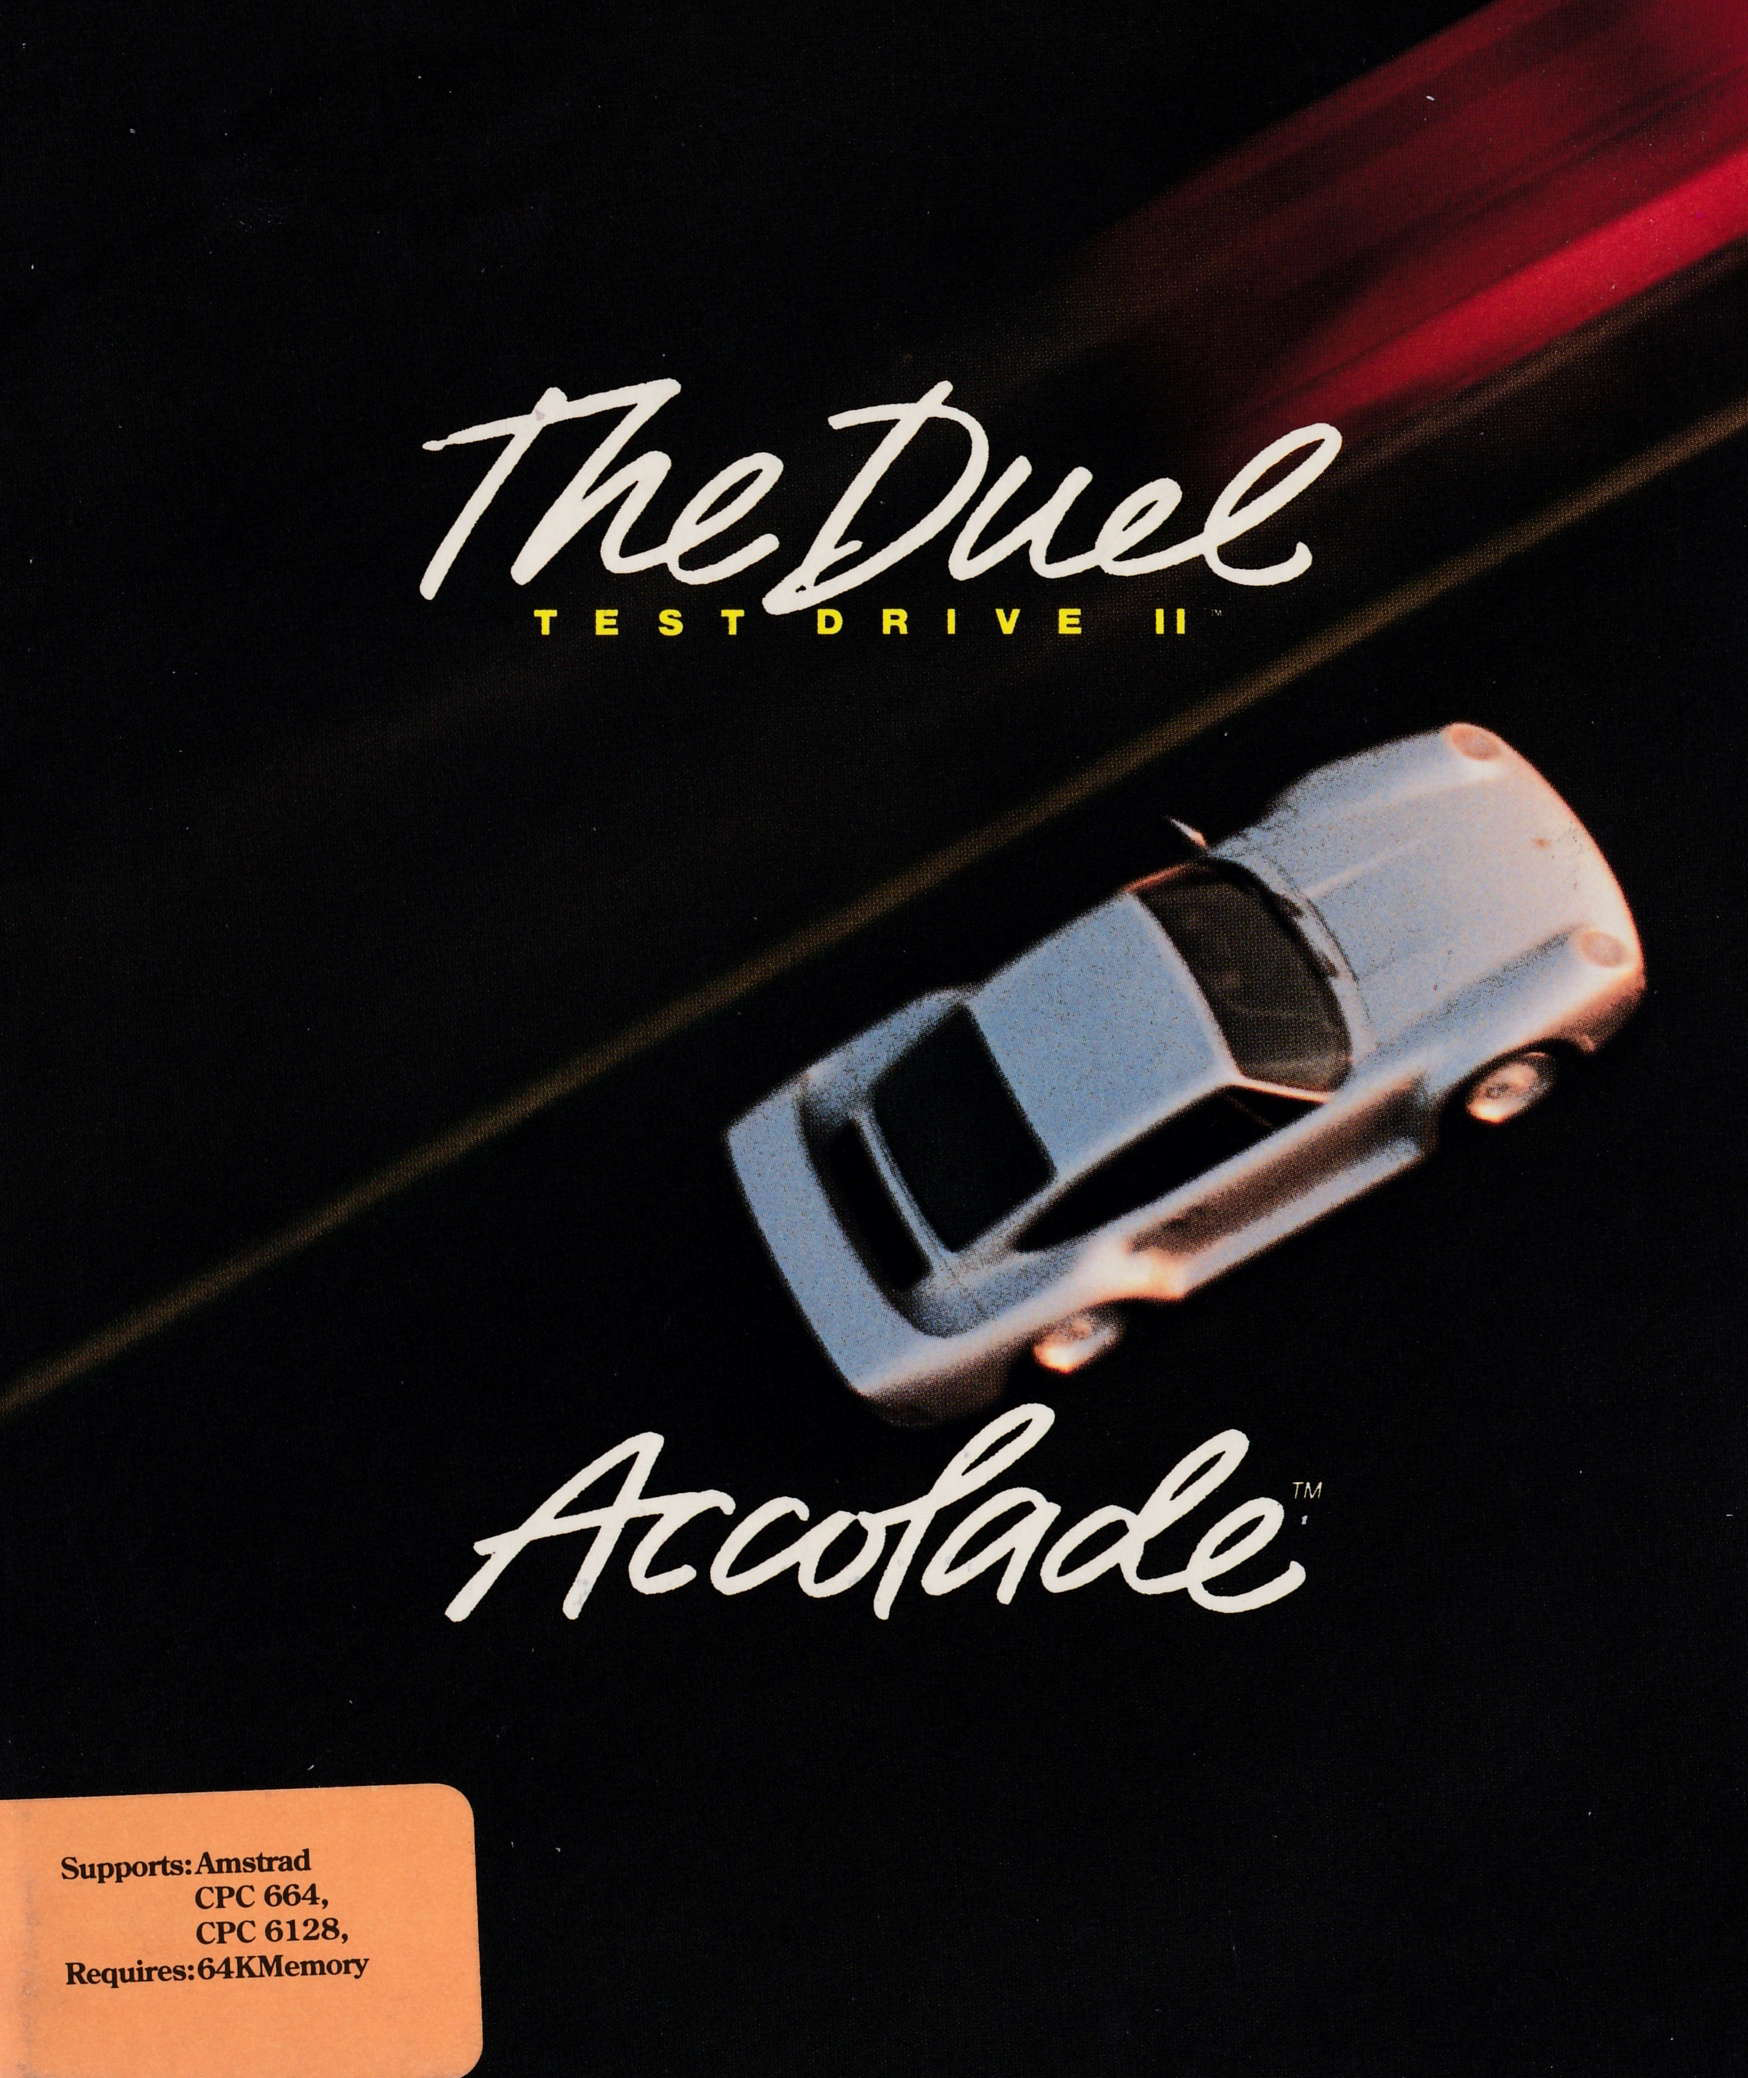 cover of the Amstrad CPC game Test Drive II - The Duel  by GameBase CPC